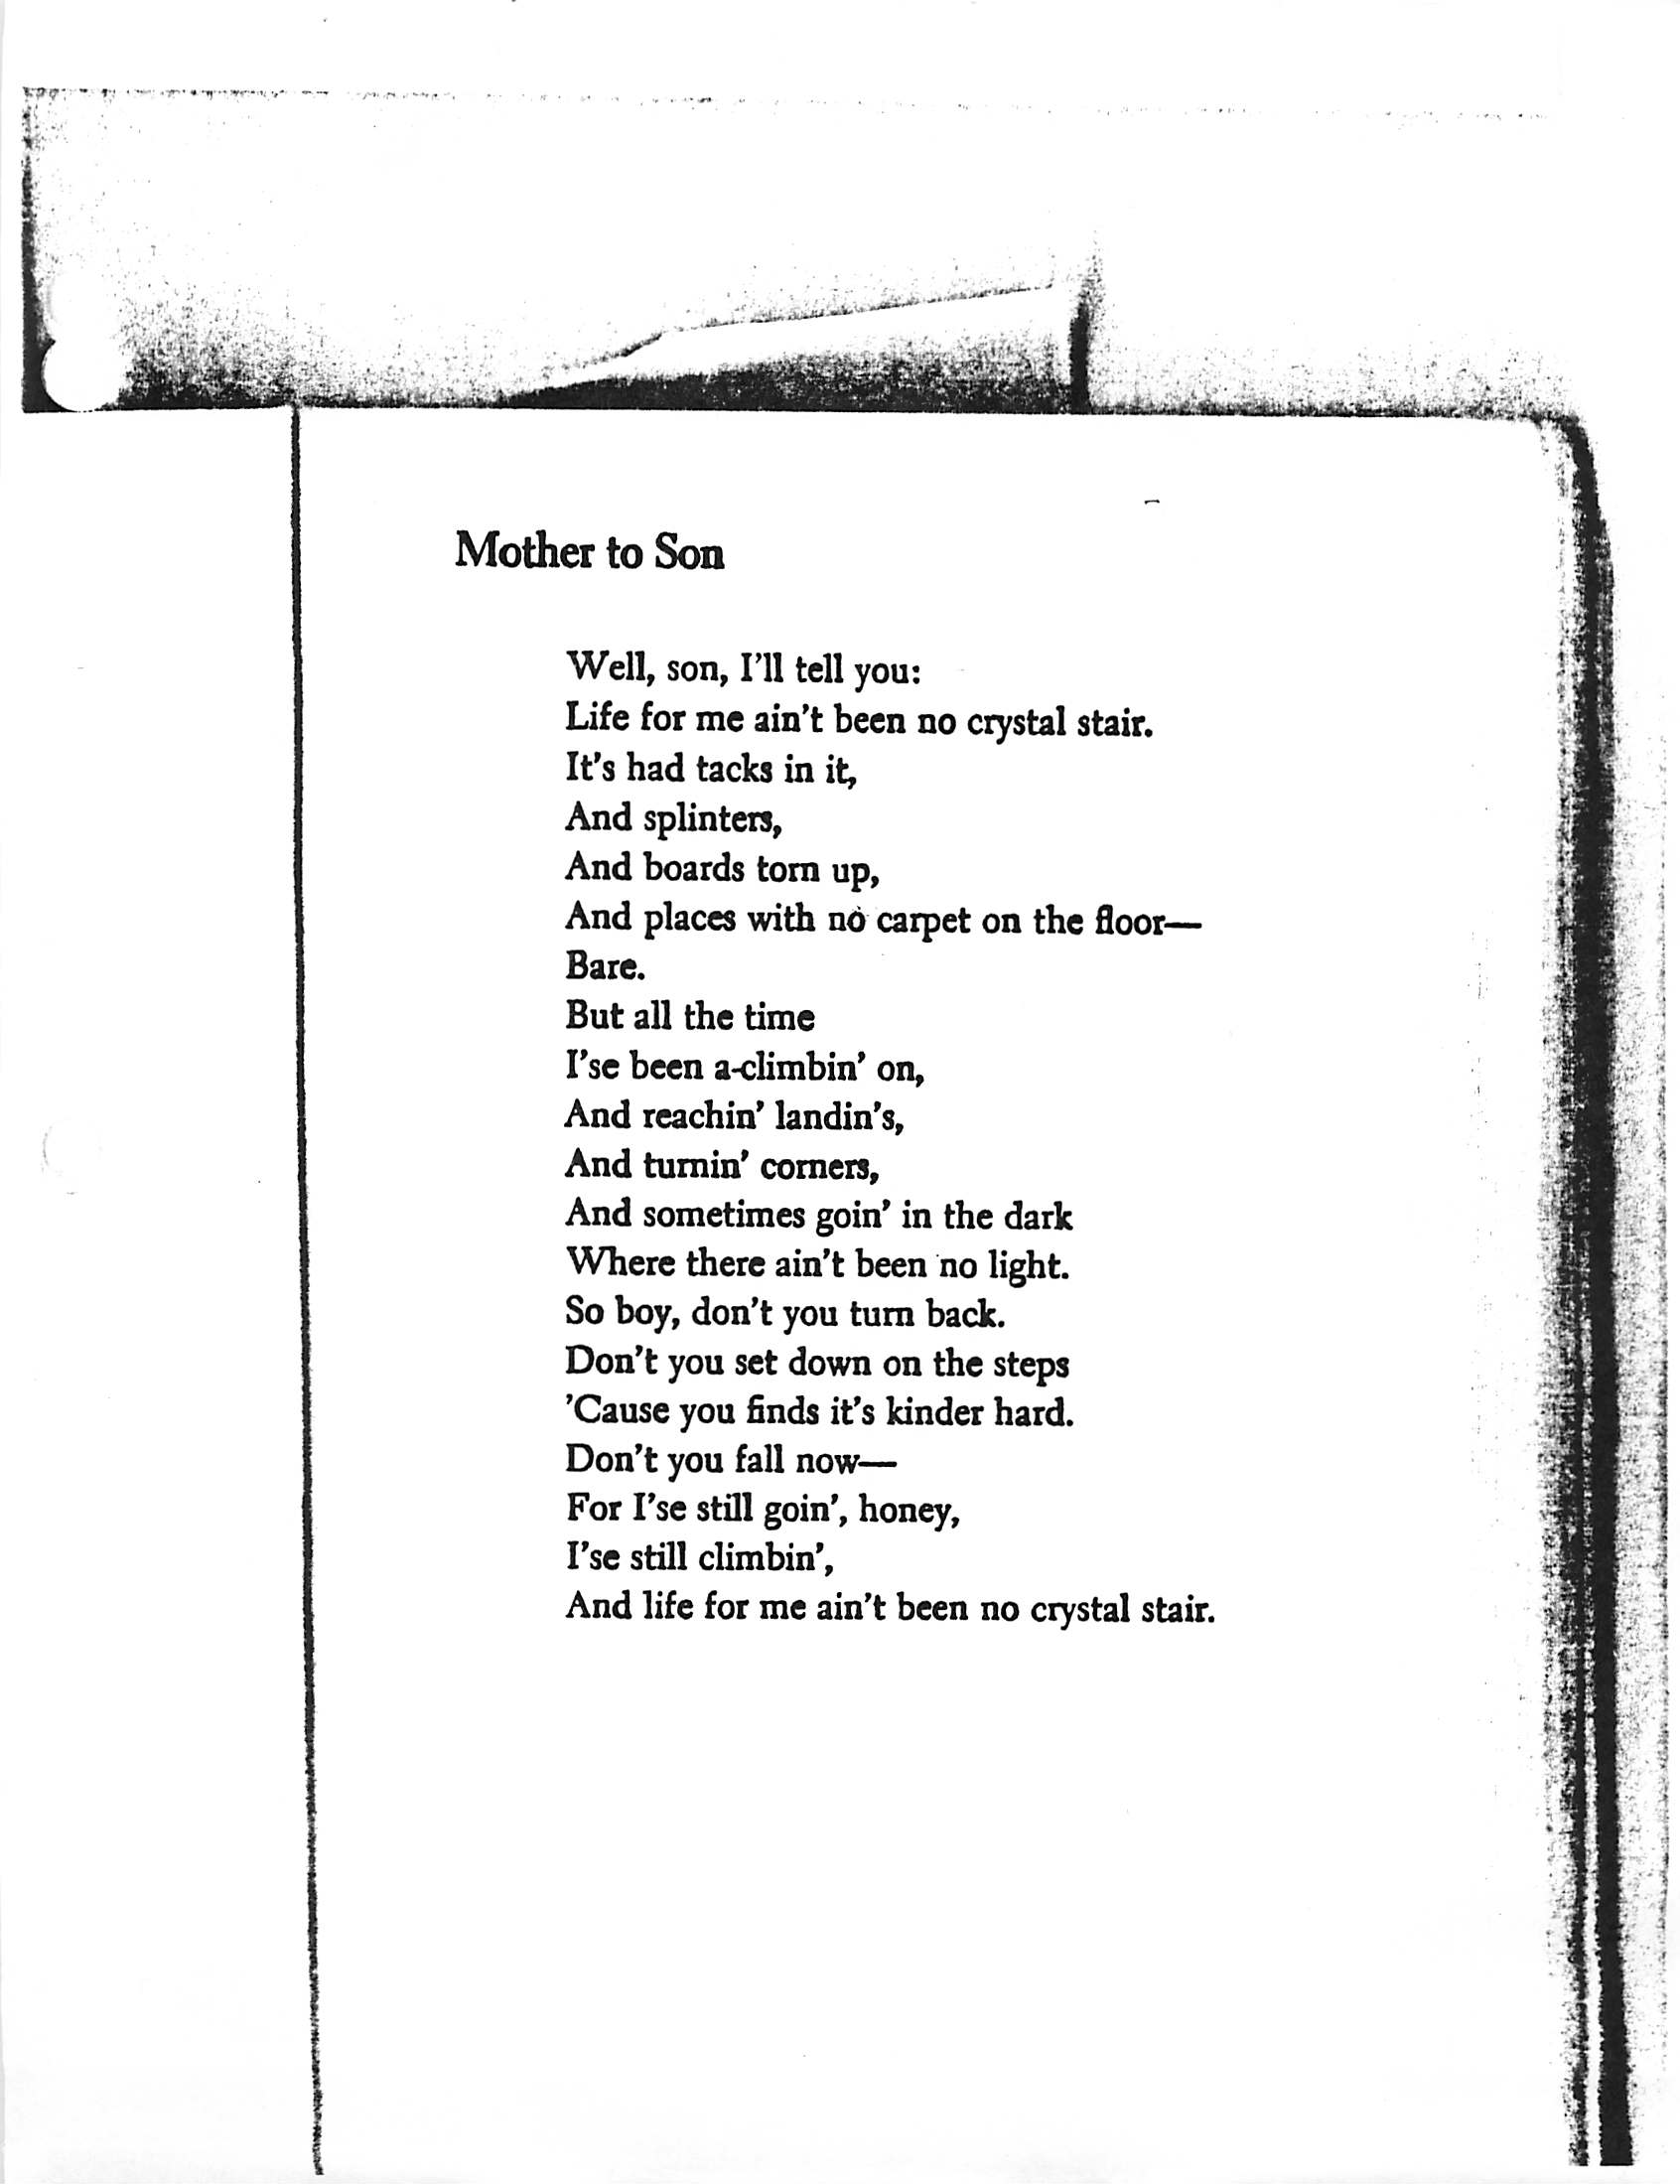 essay about mother essay my mother daily routine authentic report  langston hughes mother to son essay langston hughes mother to son essay example topics sample